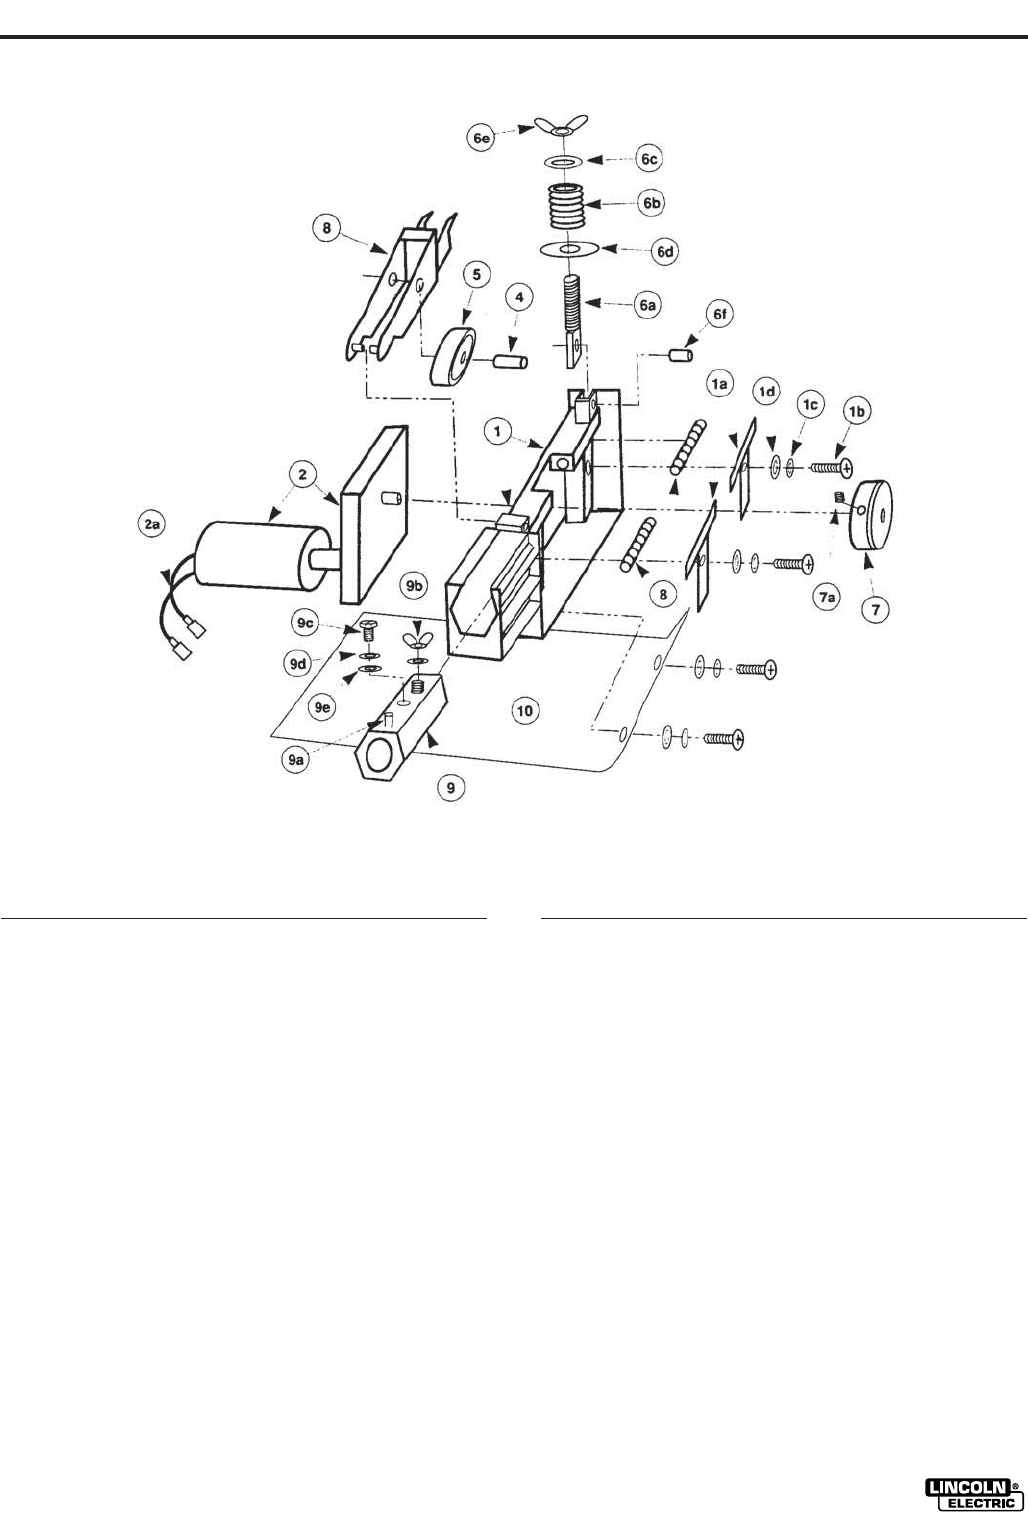 Page 50 Of Lincoln Electric Welder IM546 User Guide